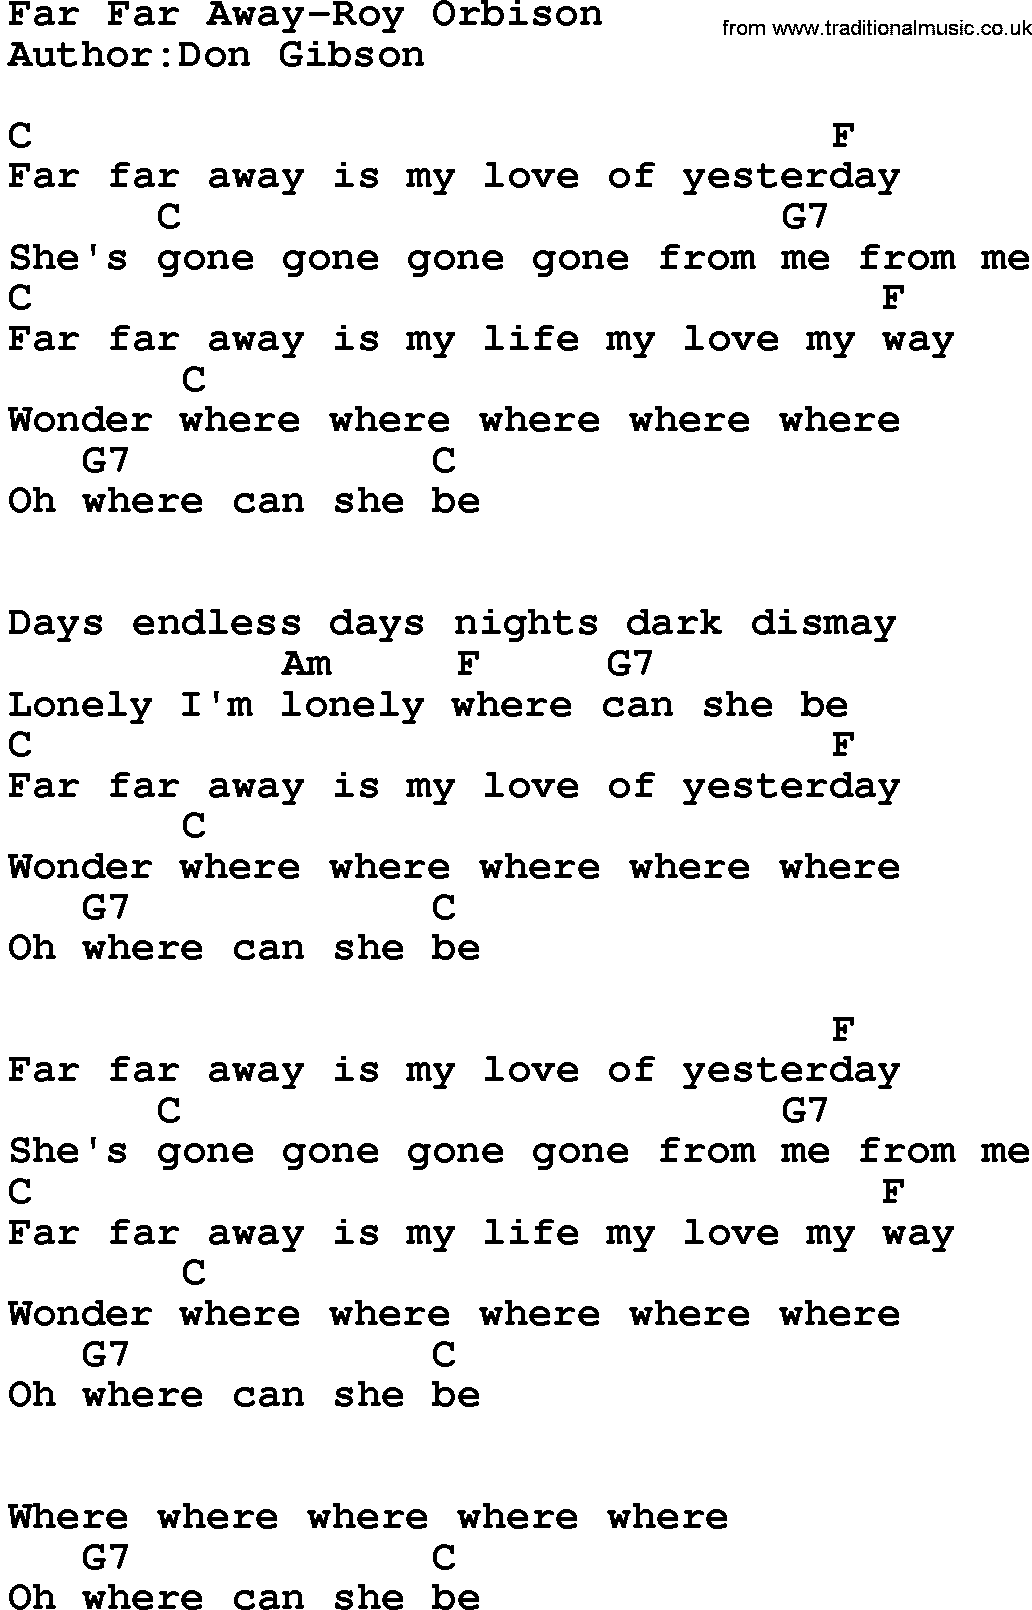 Now that we re here so far away lyrics